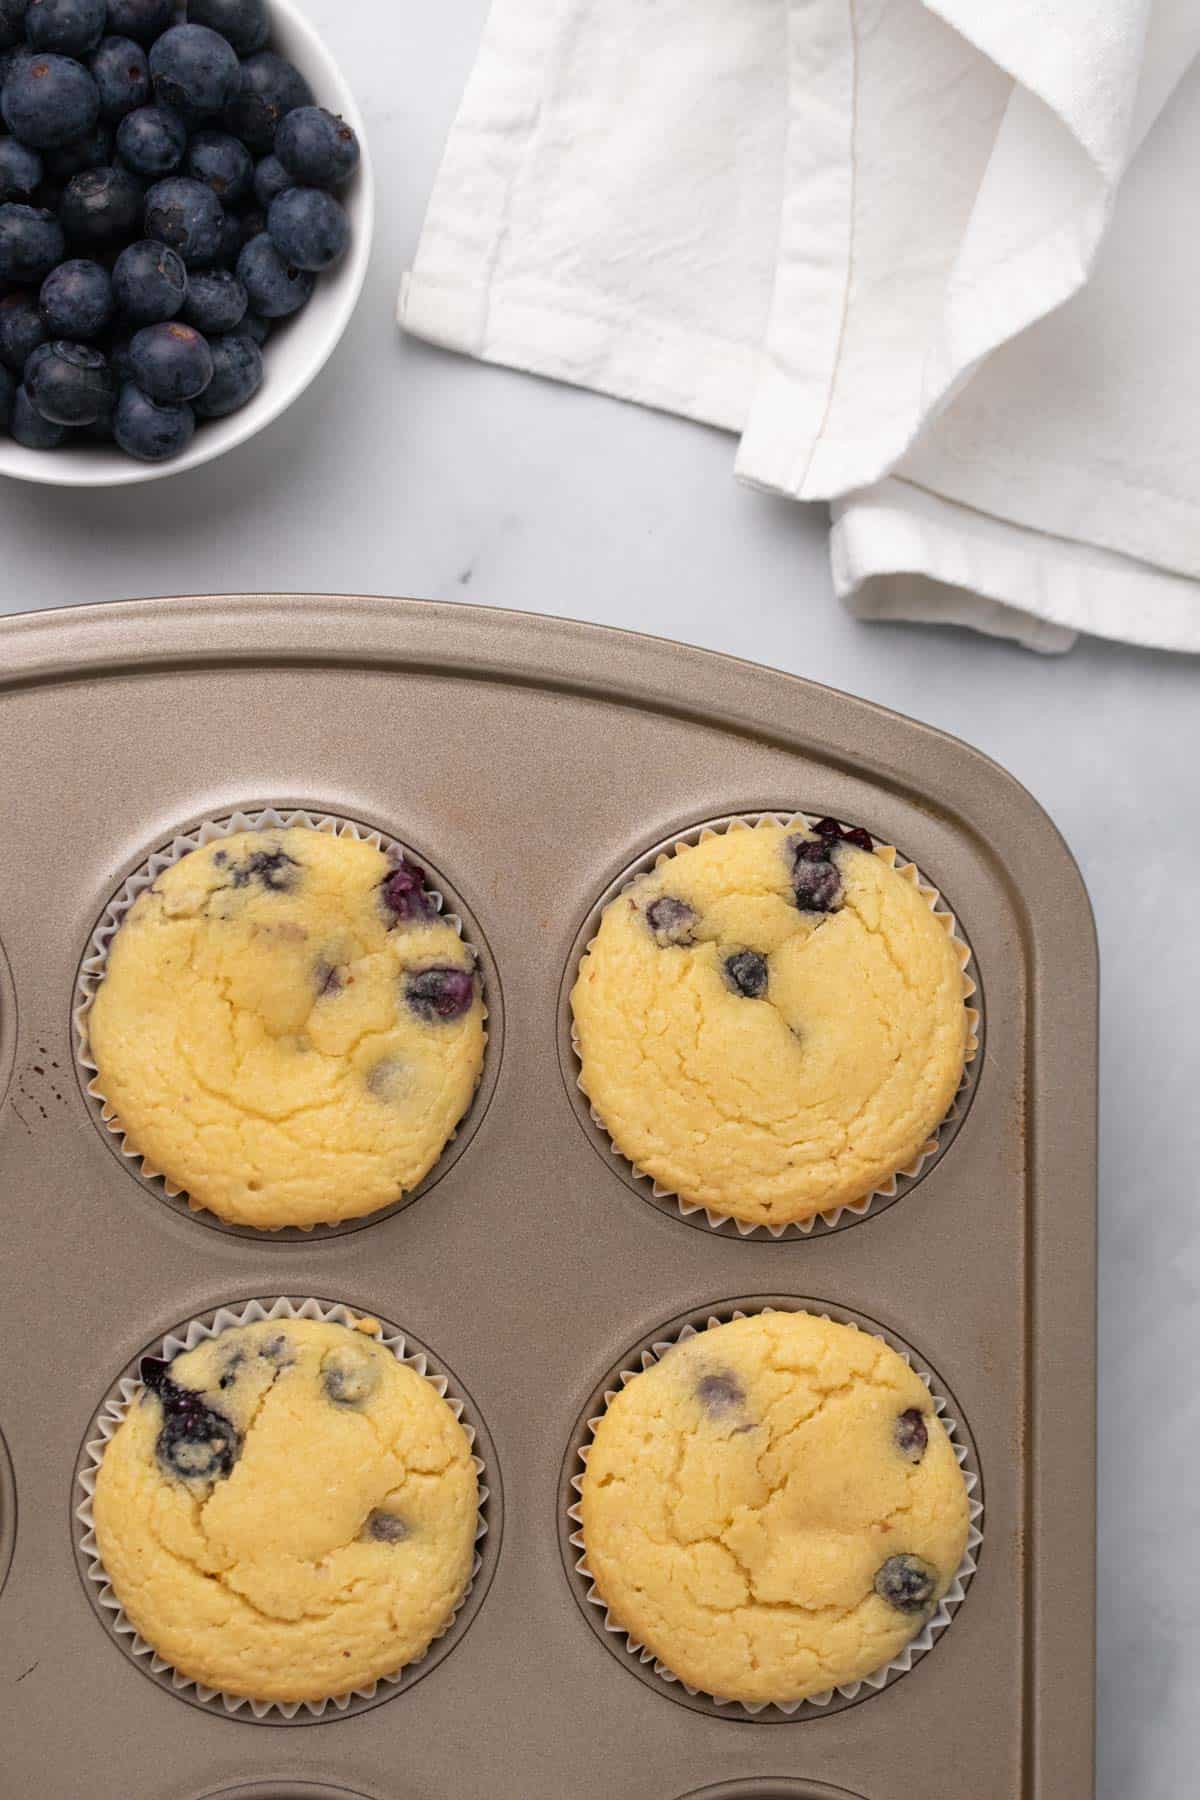 Close-up of blueberry muffins in a pan next to a ramekin of fresh blueberries